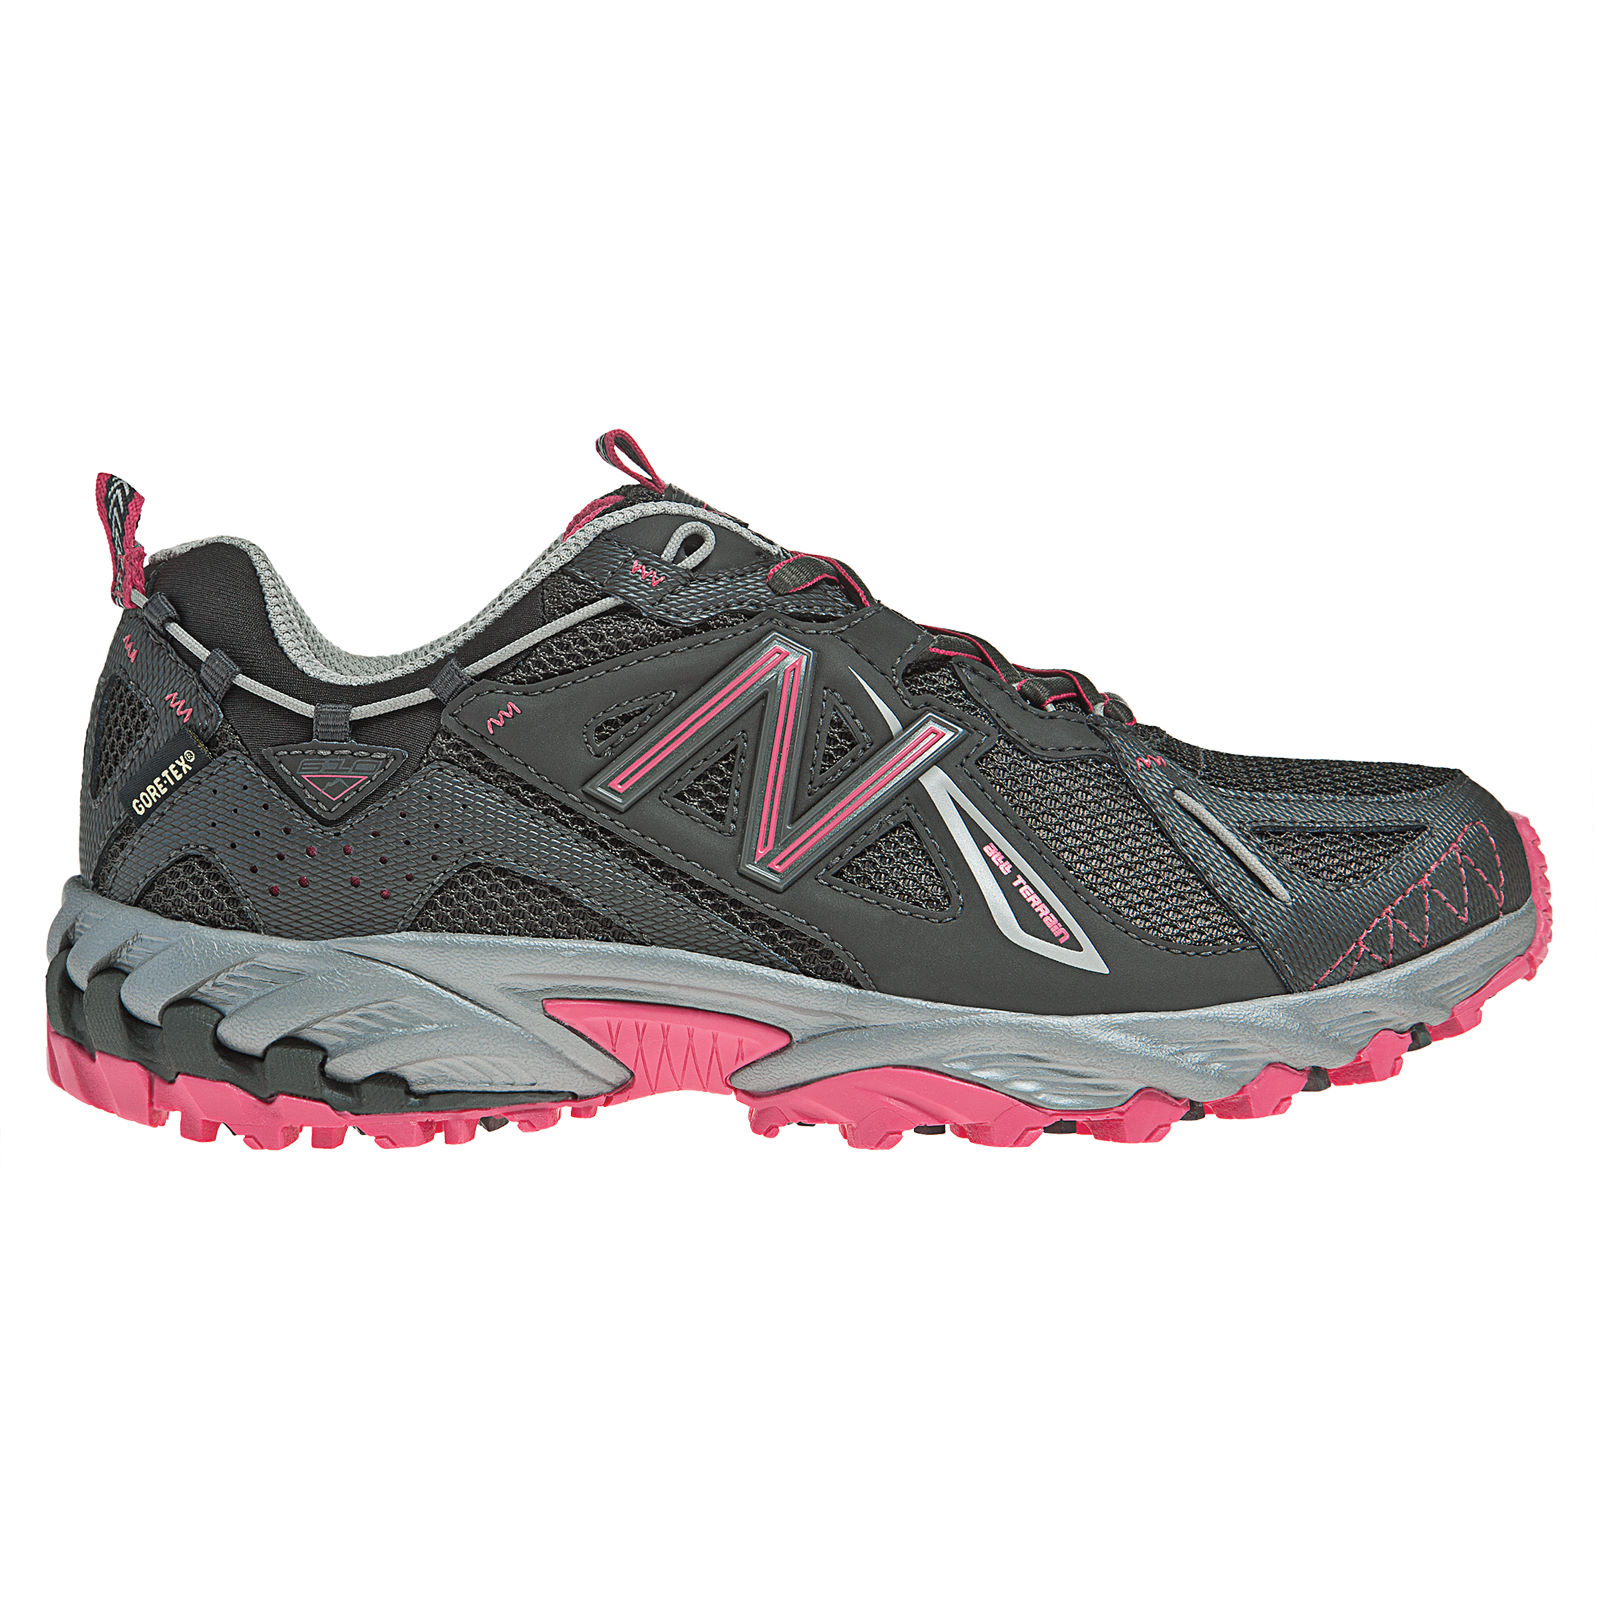 chaussures de running trail new balance ladies wt610gtx trail shoes aw12 wiggle france. Black Bedroom Furniture Sets. Home Design Ideas